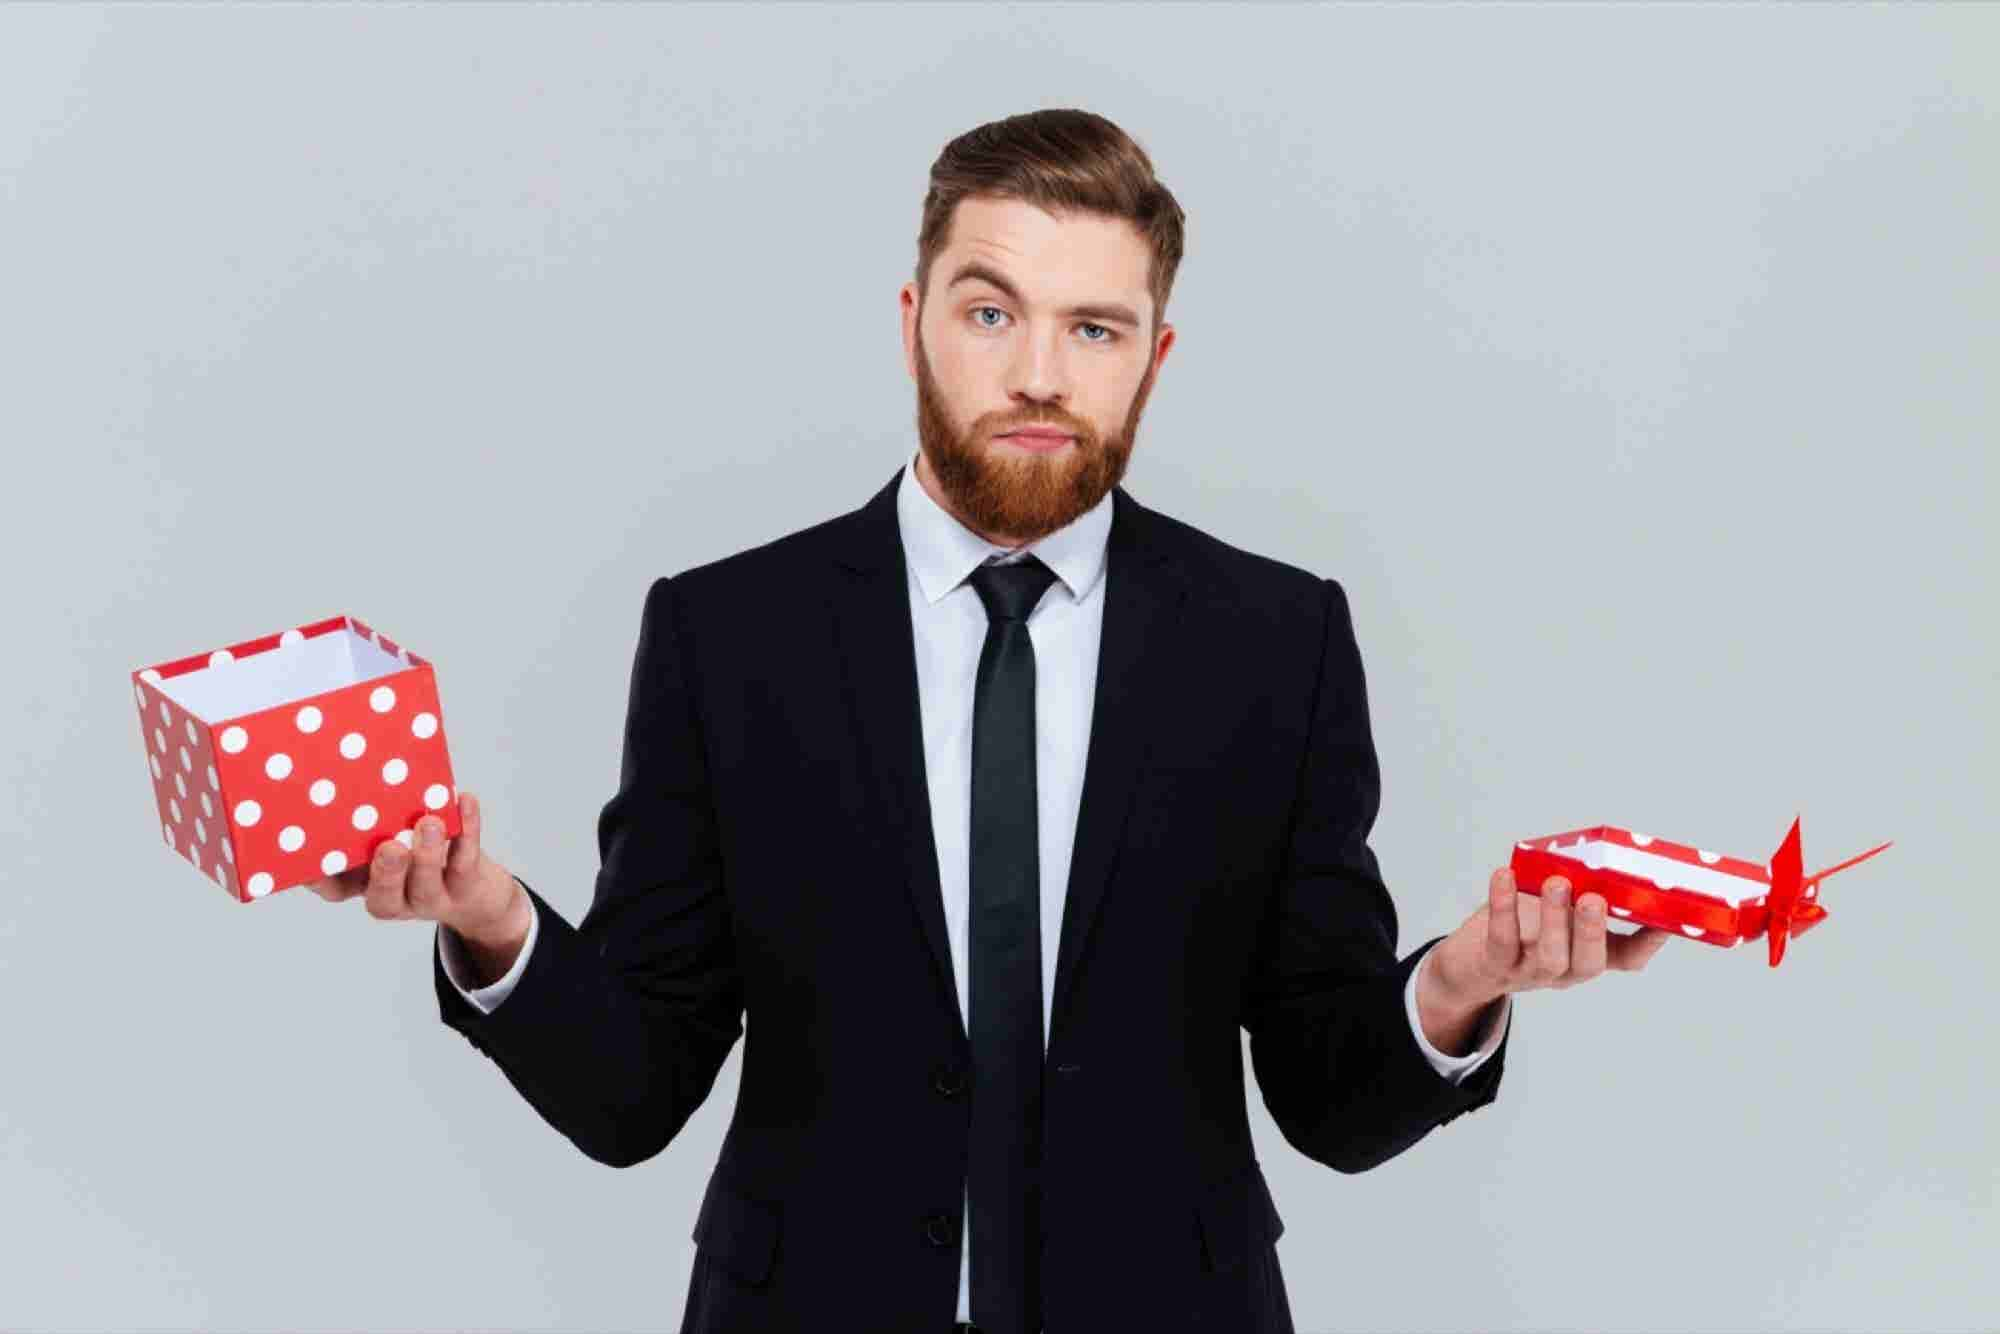 Giving Gifts Internationally: How to Wow Your Global Partners Every Time